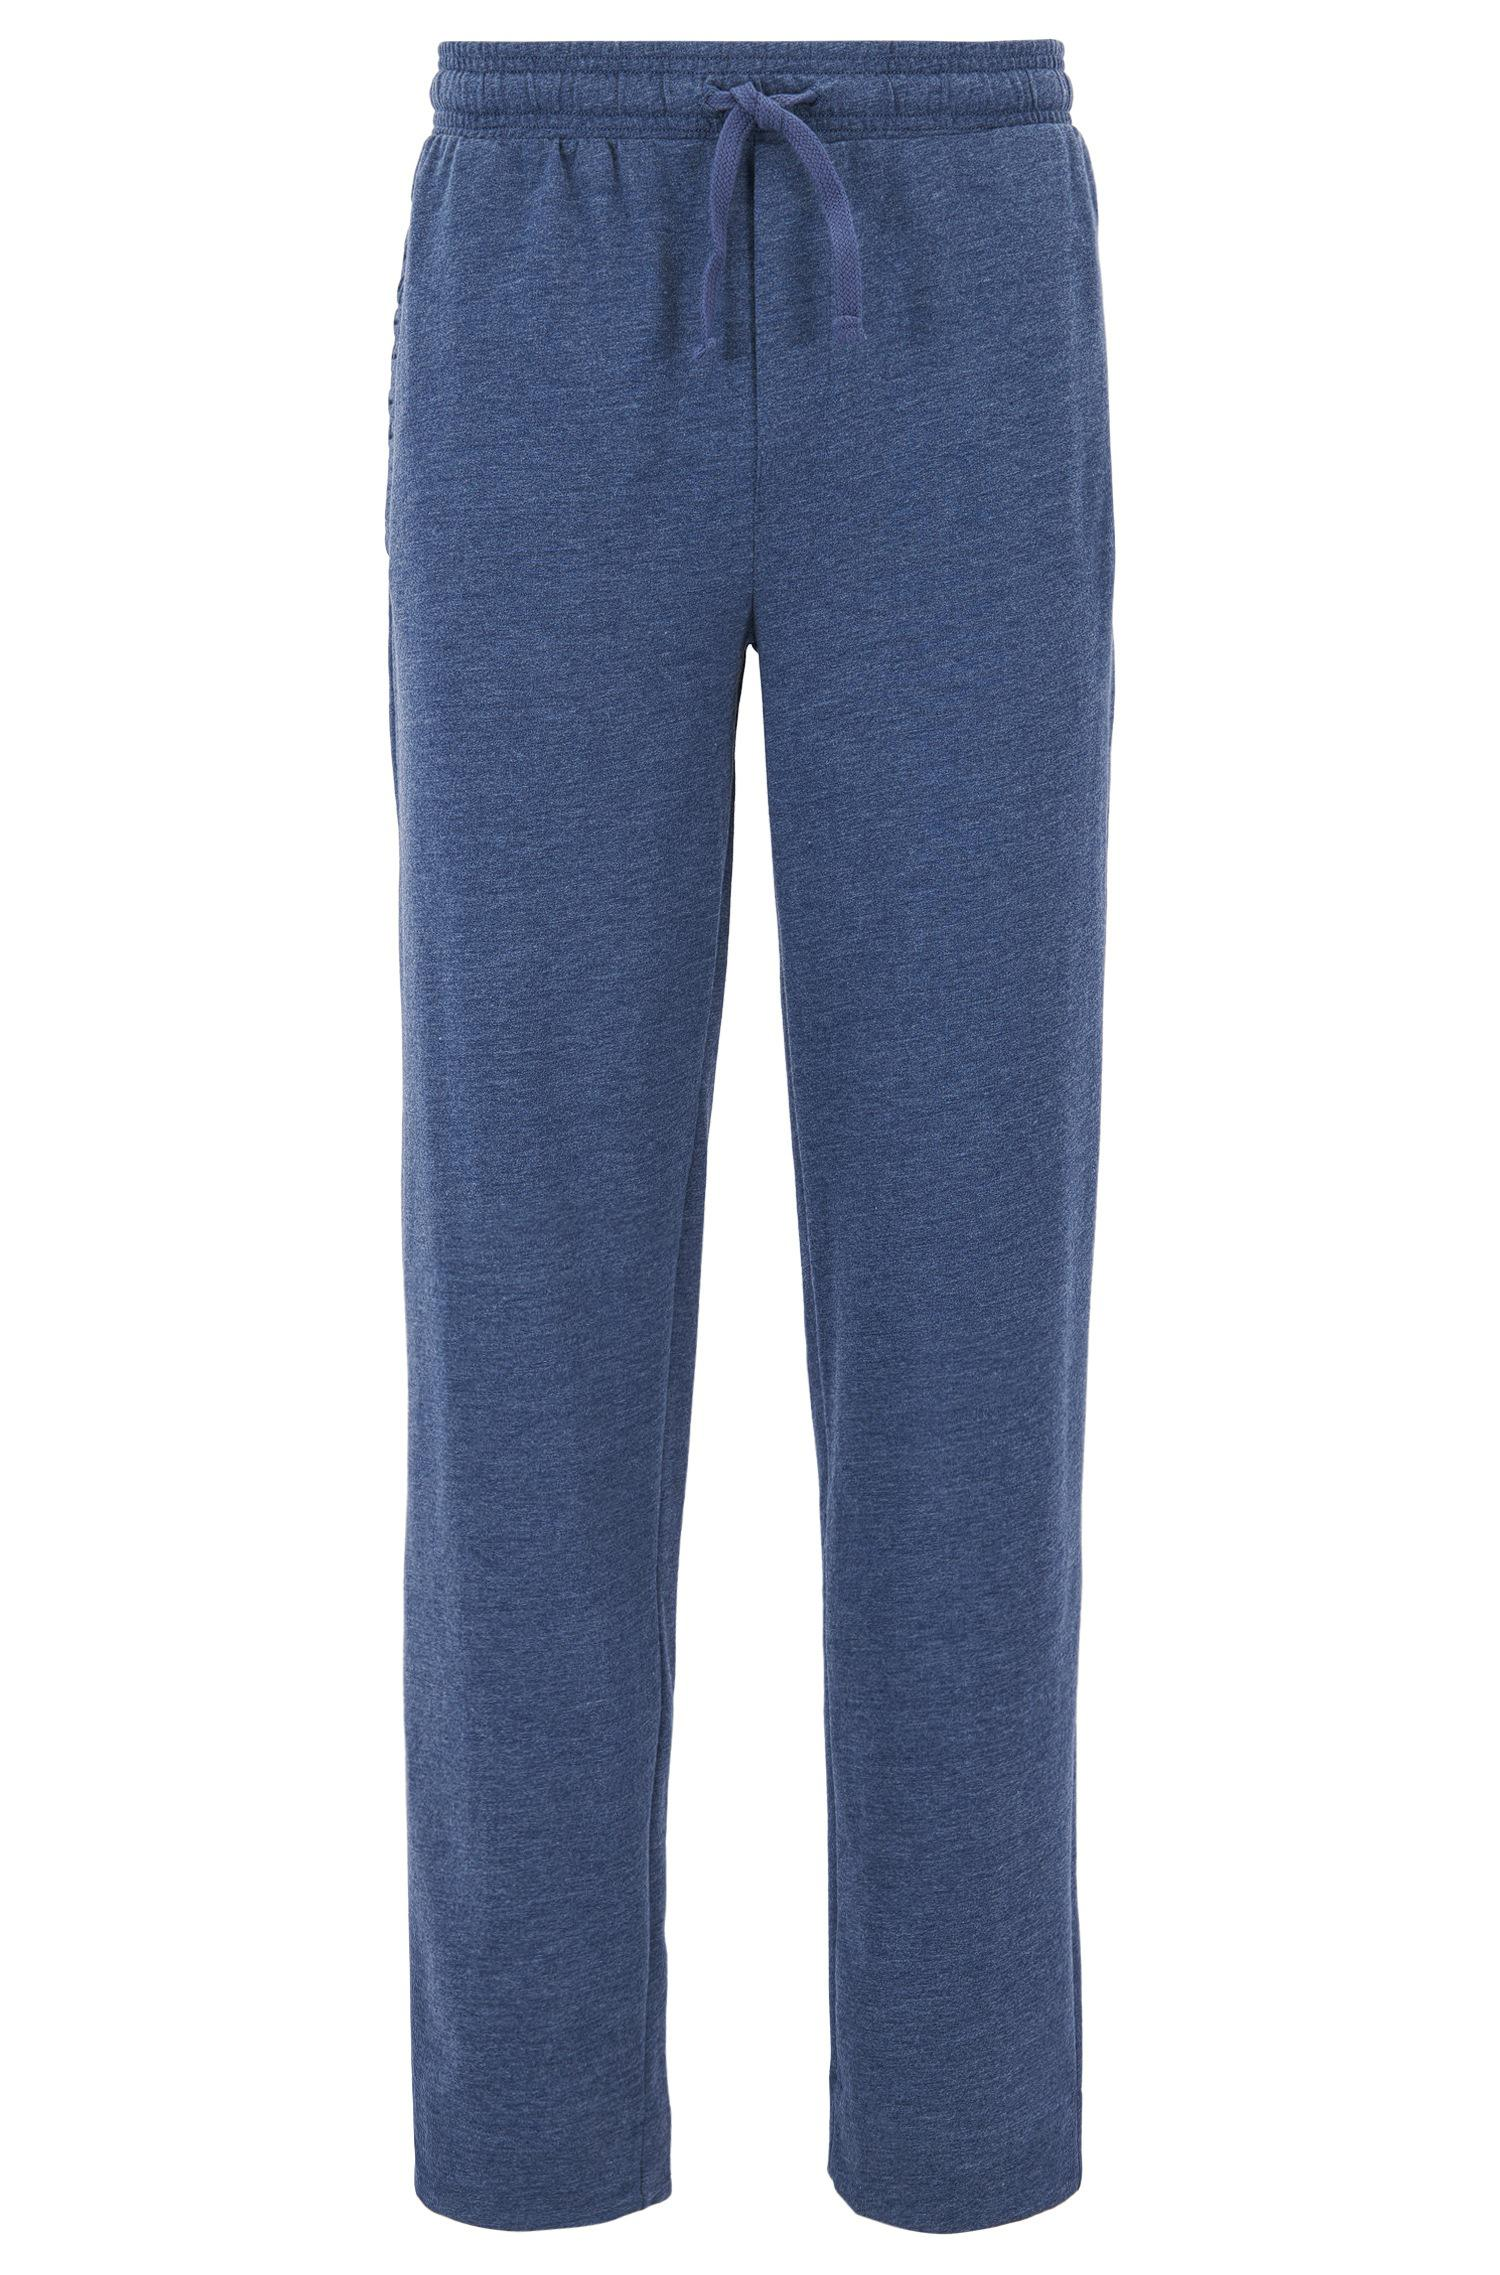 Marketable Cheap Online Best Sale Online Pyjama trousers in striped cotton twill with pockets BOSS Discount Collections Cheap Affordable QKPXpuPik